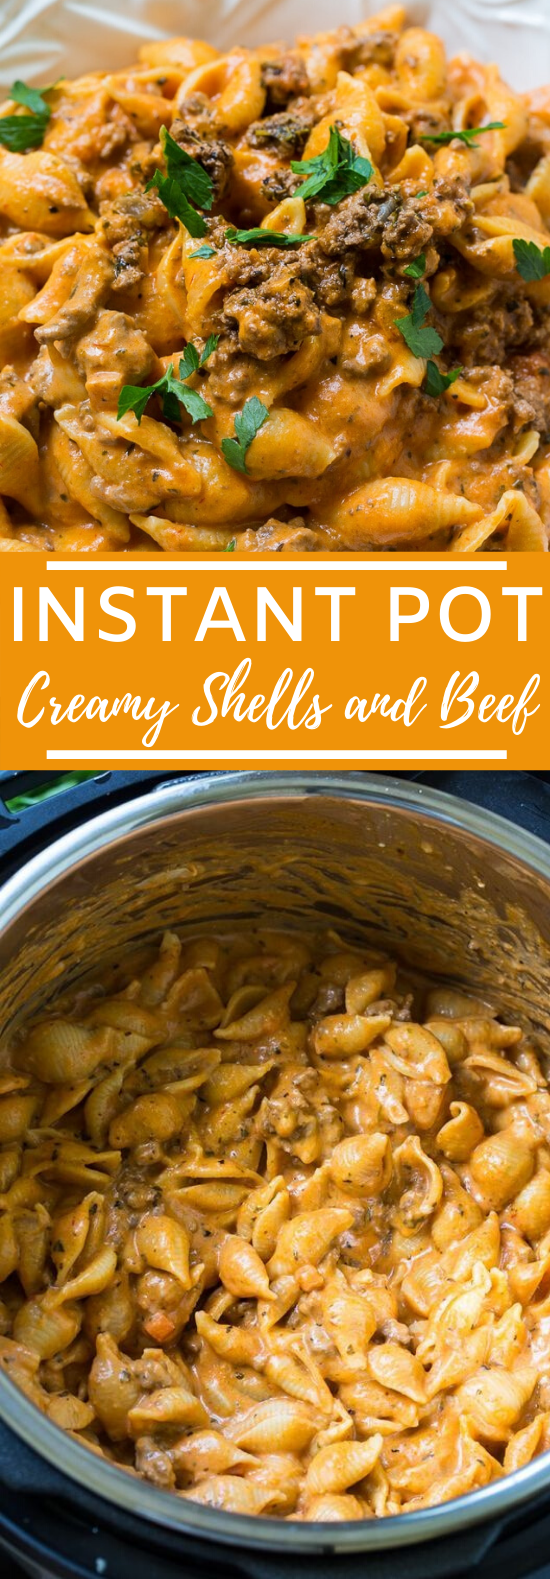 Instant Pot Creamy Shells and Beef  #dinner #recipe #pasta #instantpot #comfortfood